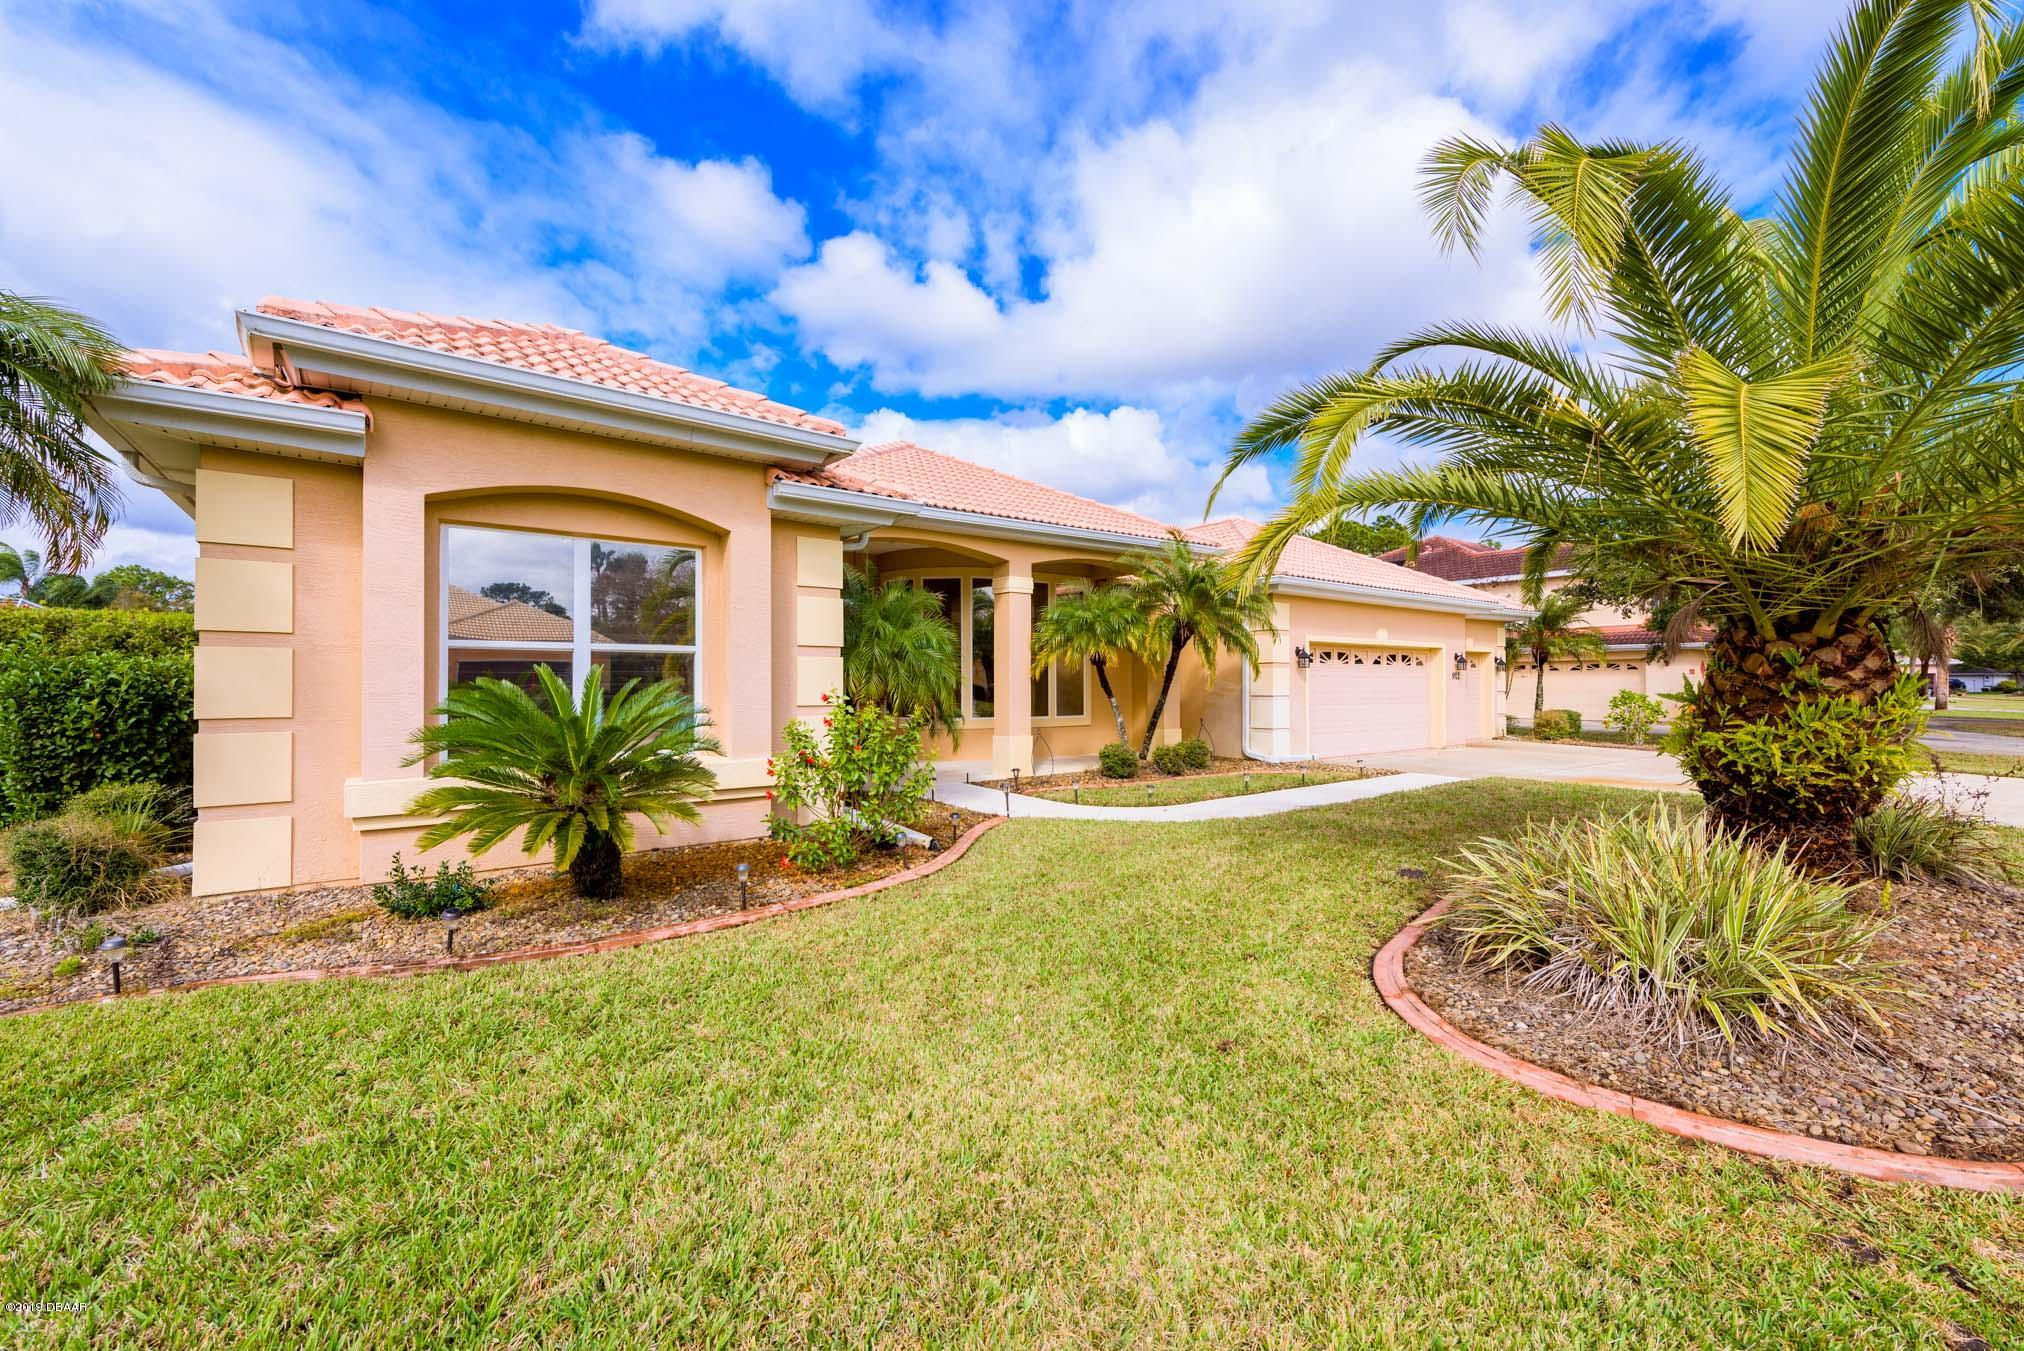 912 Sea Duck Drive, one of homes for sale in South Daytona